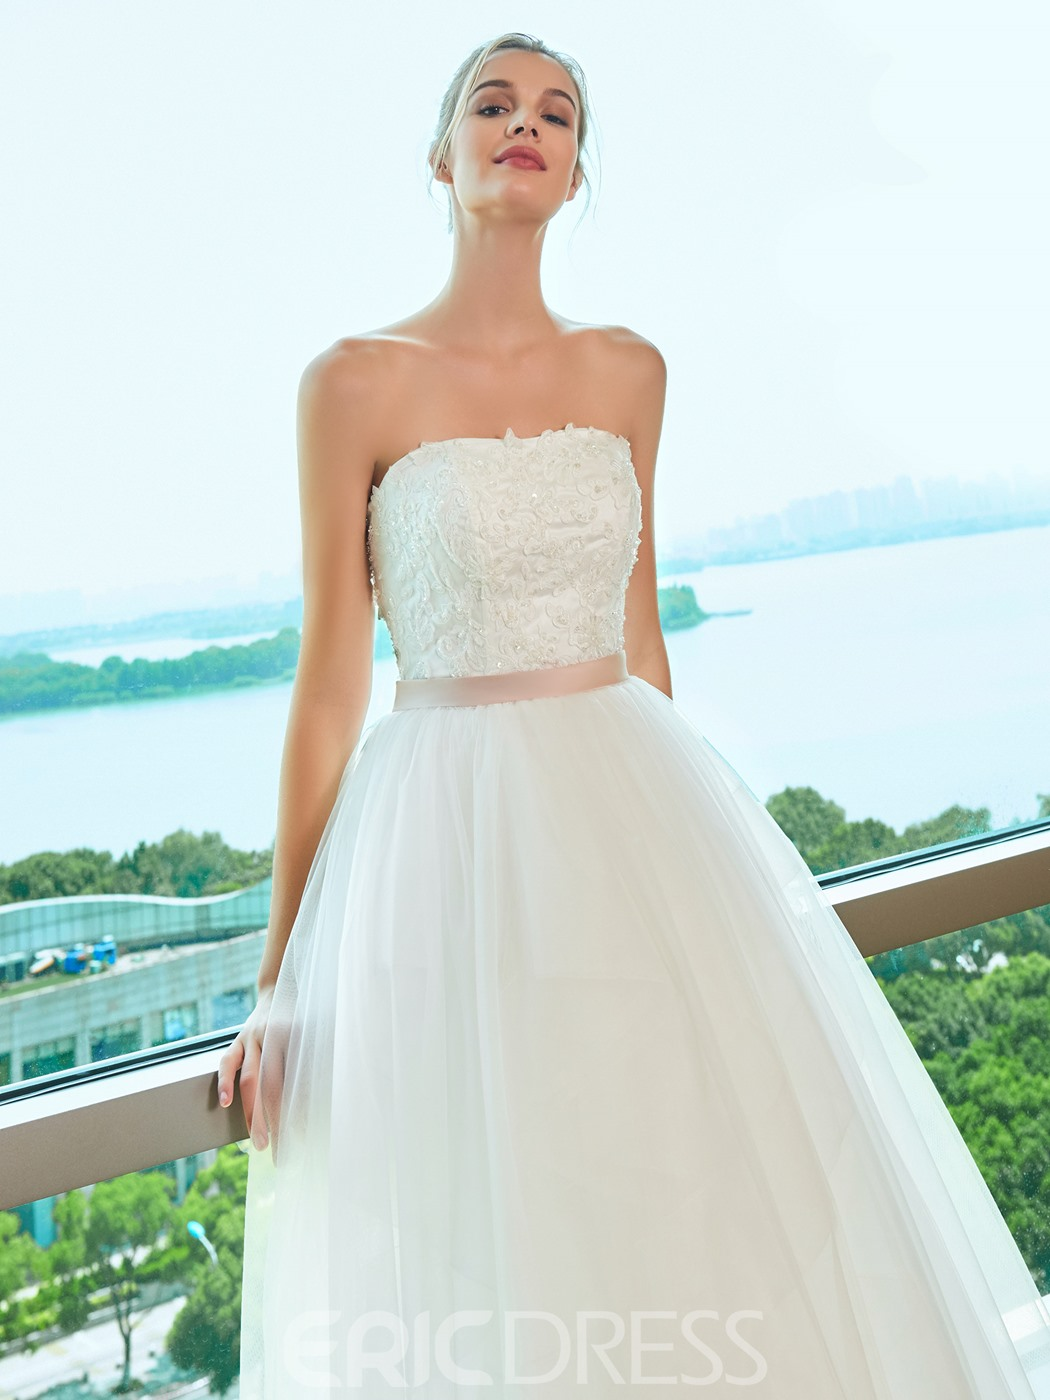 Ercdress Ball Gown Strapless Wedding Dress